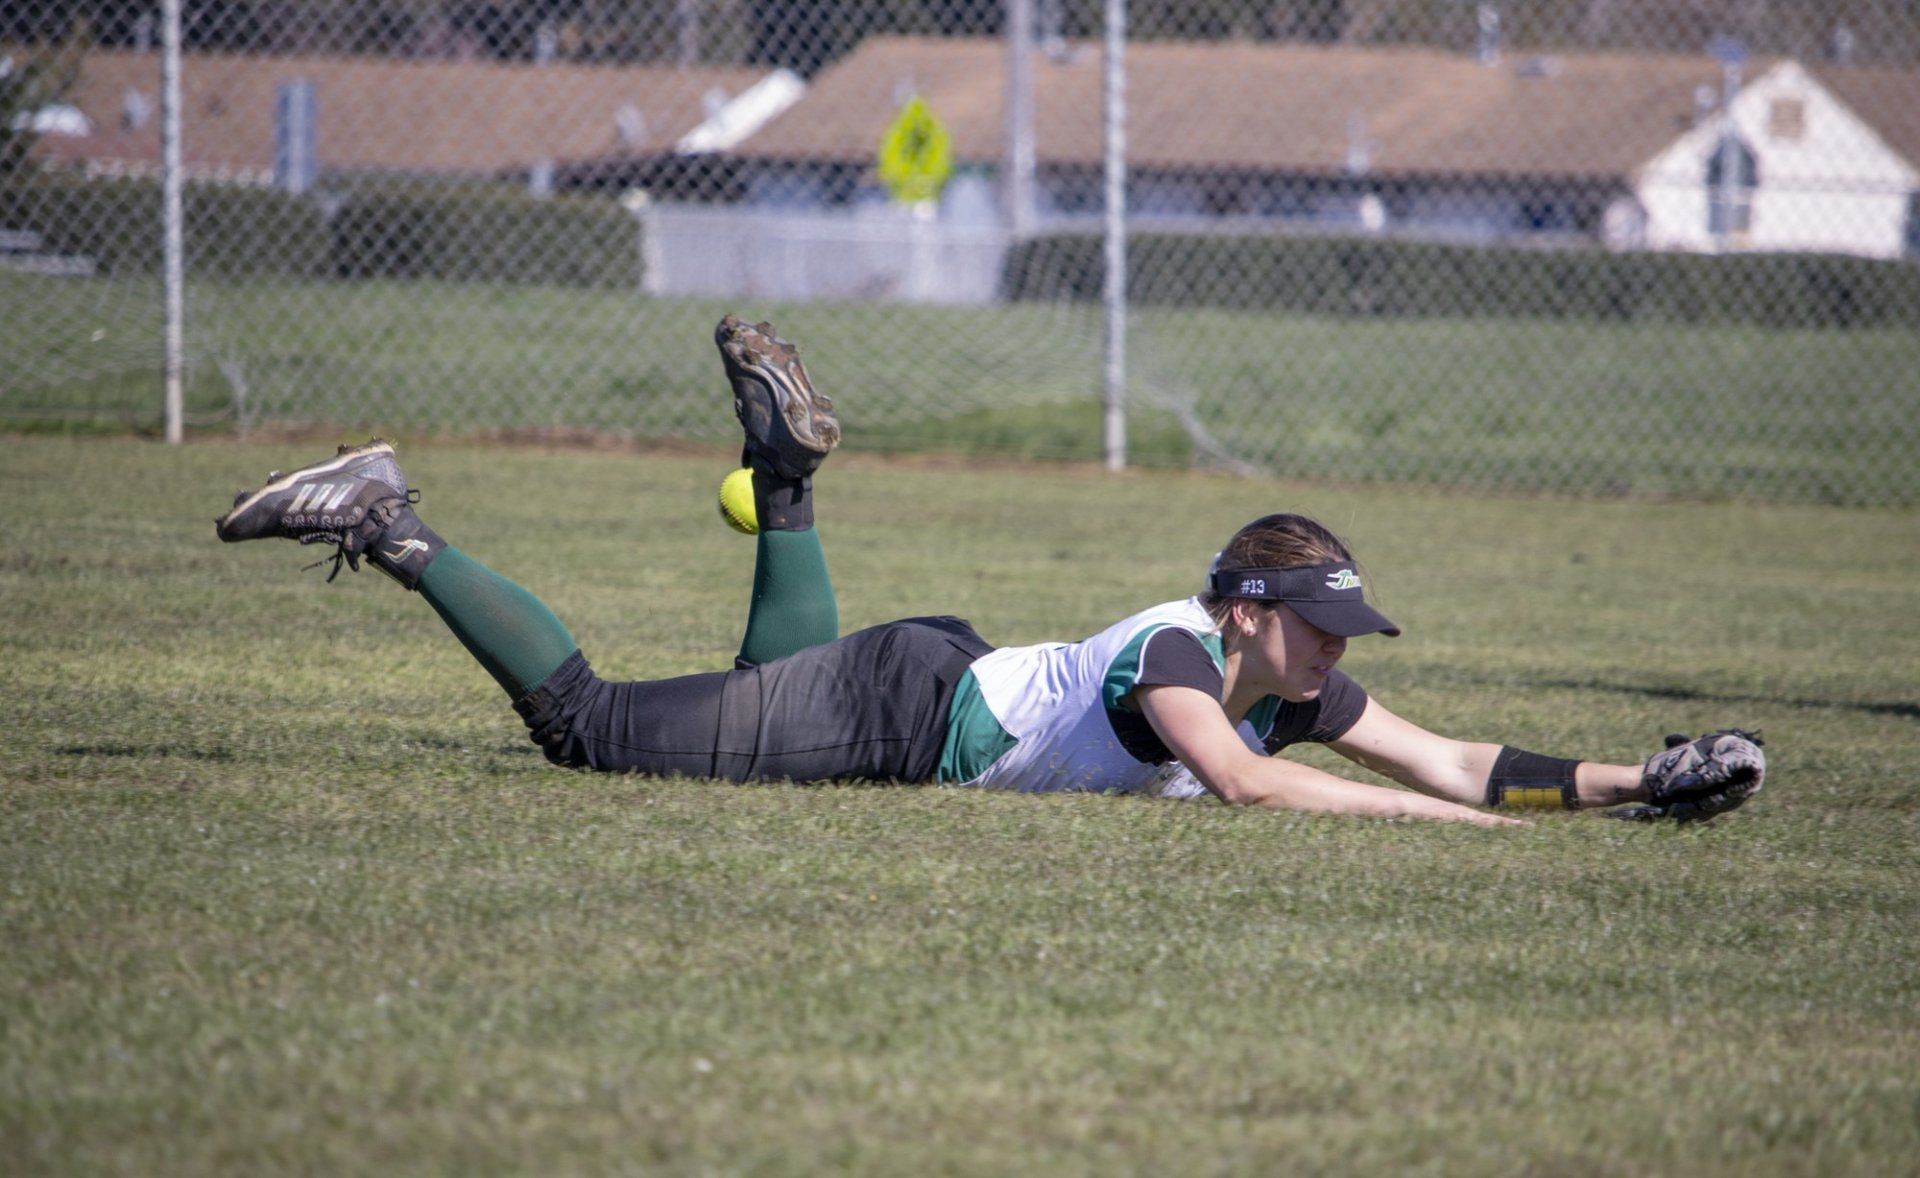 Senior outfielder Illa Haley diving and missing a line drive Friday versus SF State. Photo credit: Matt Shiffler